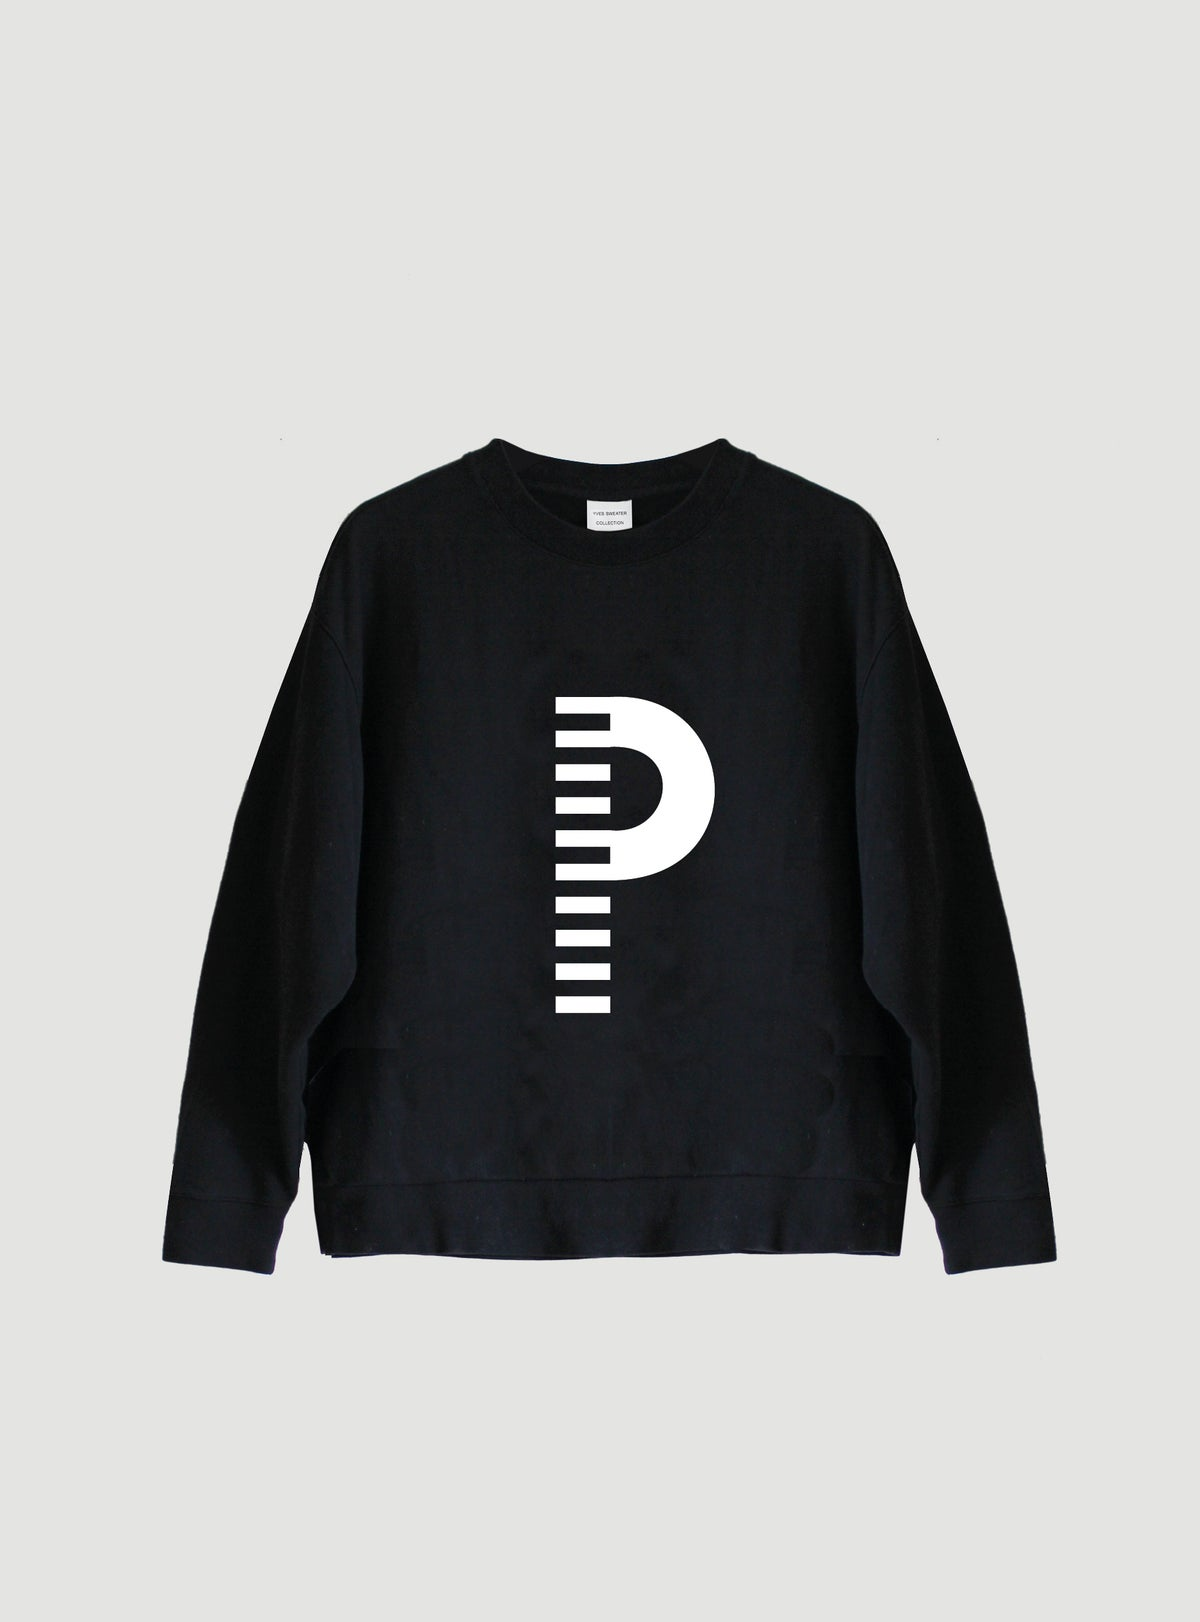 Image of P Sweater